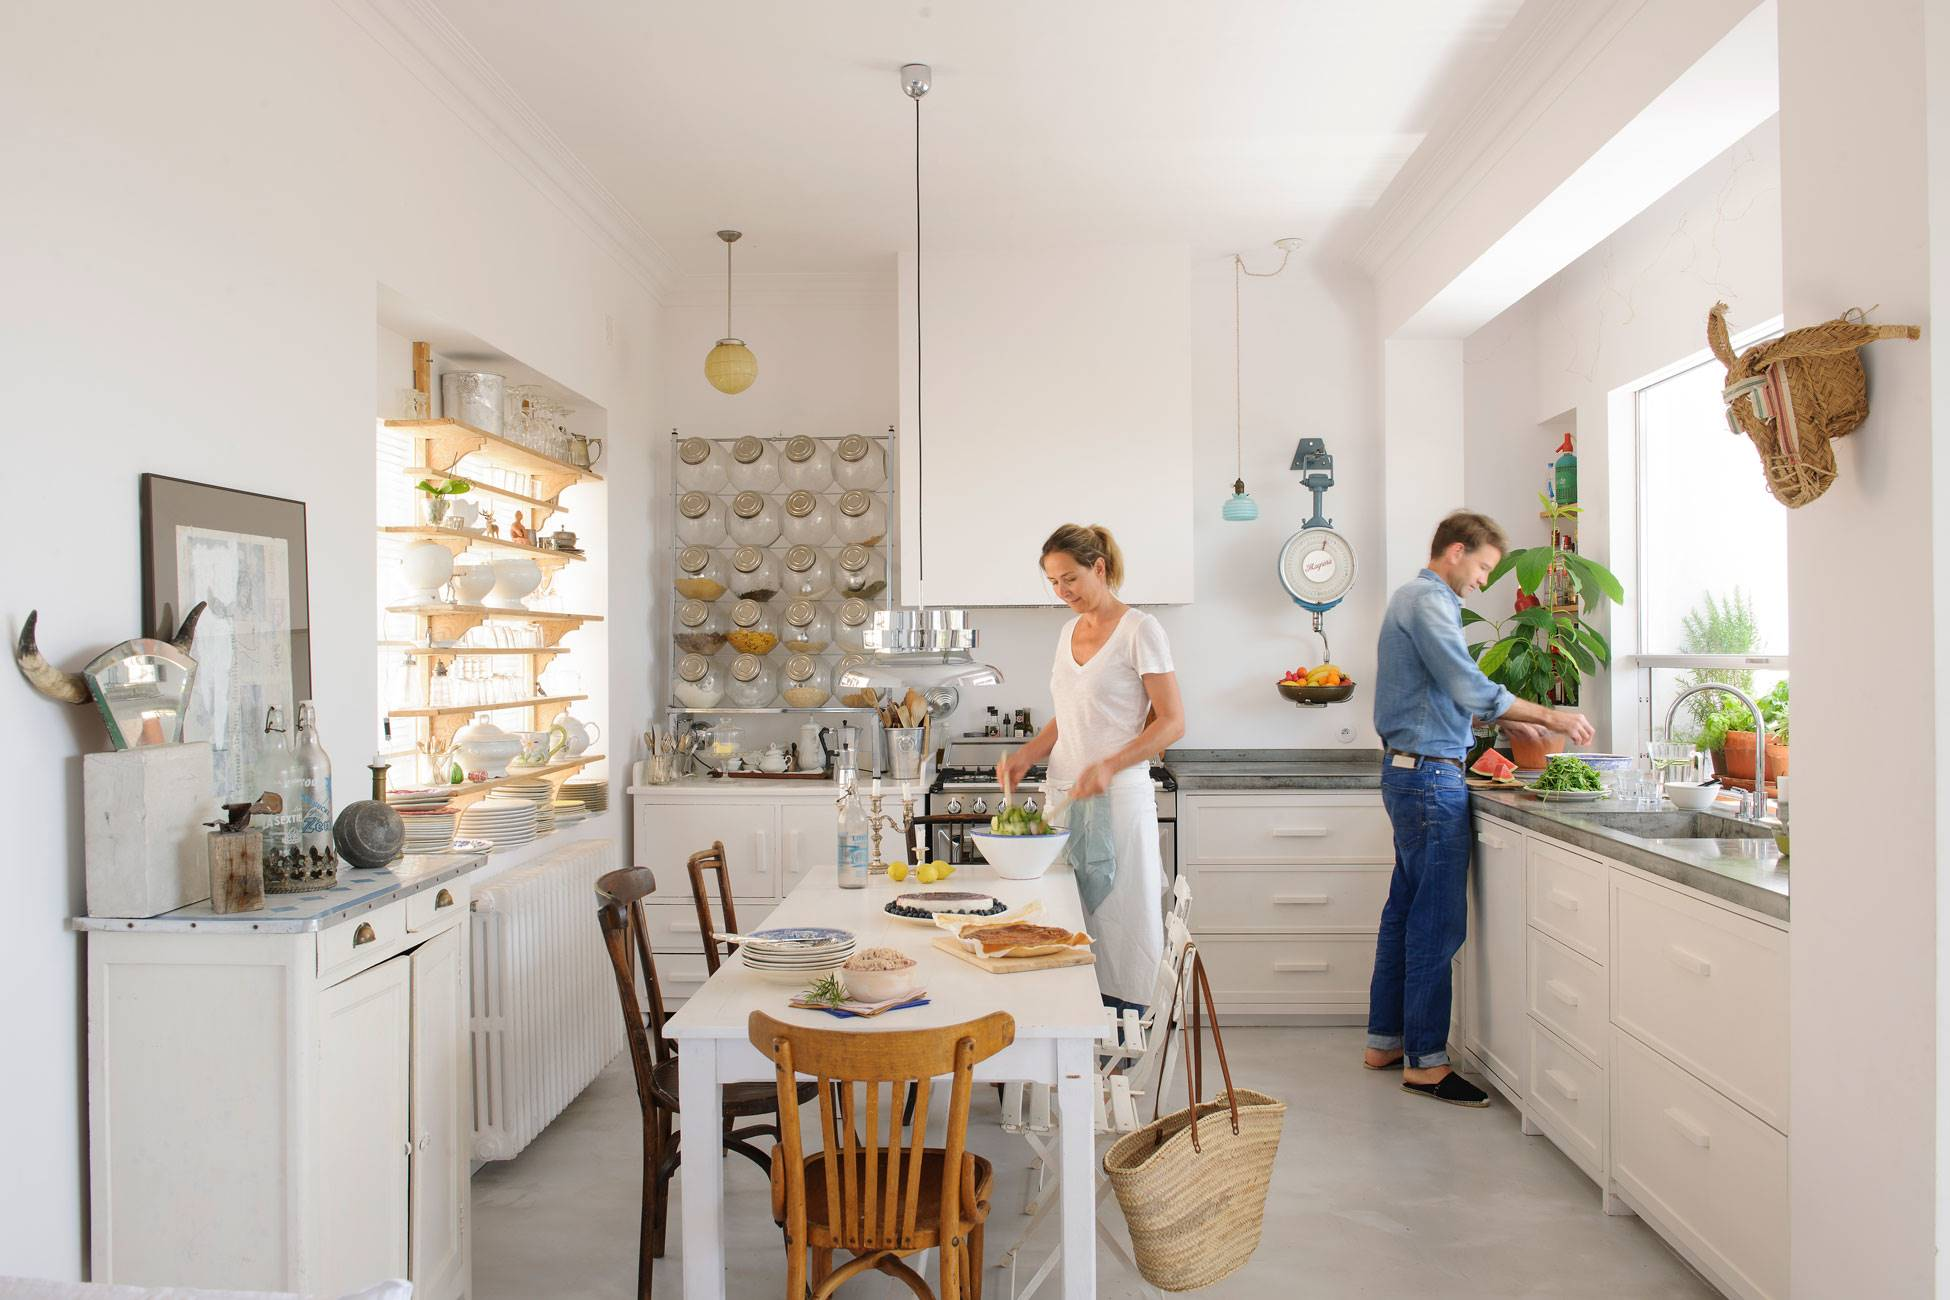 kitchen-in-white-and-cement-floor-with-vintage-decorative-elements 486870 O. Details that make the difference